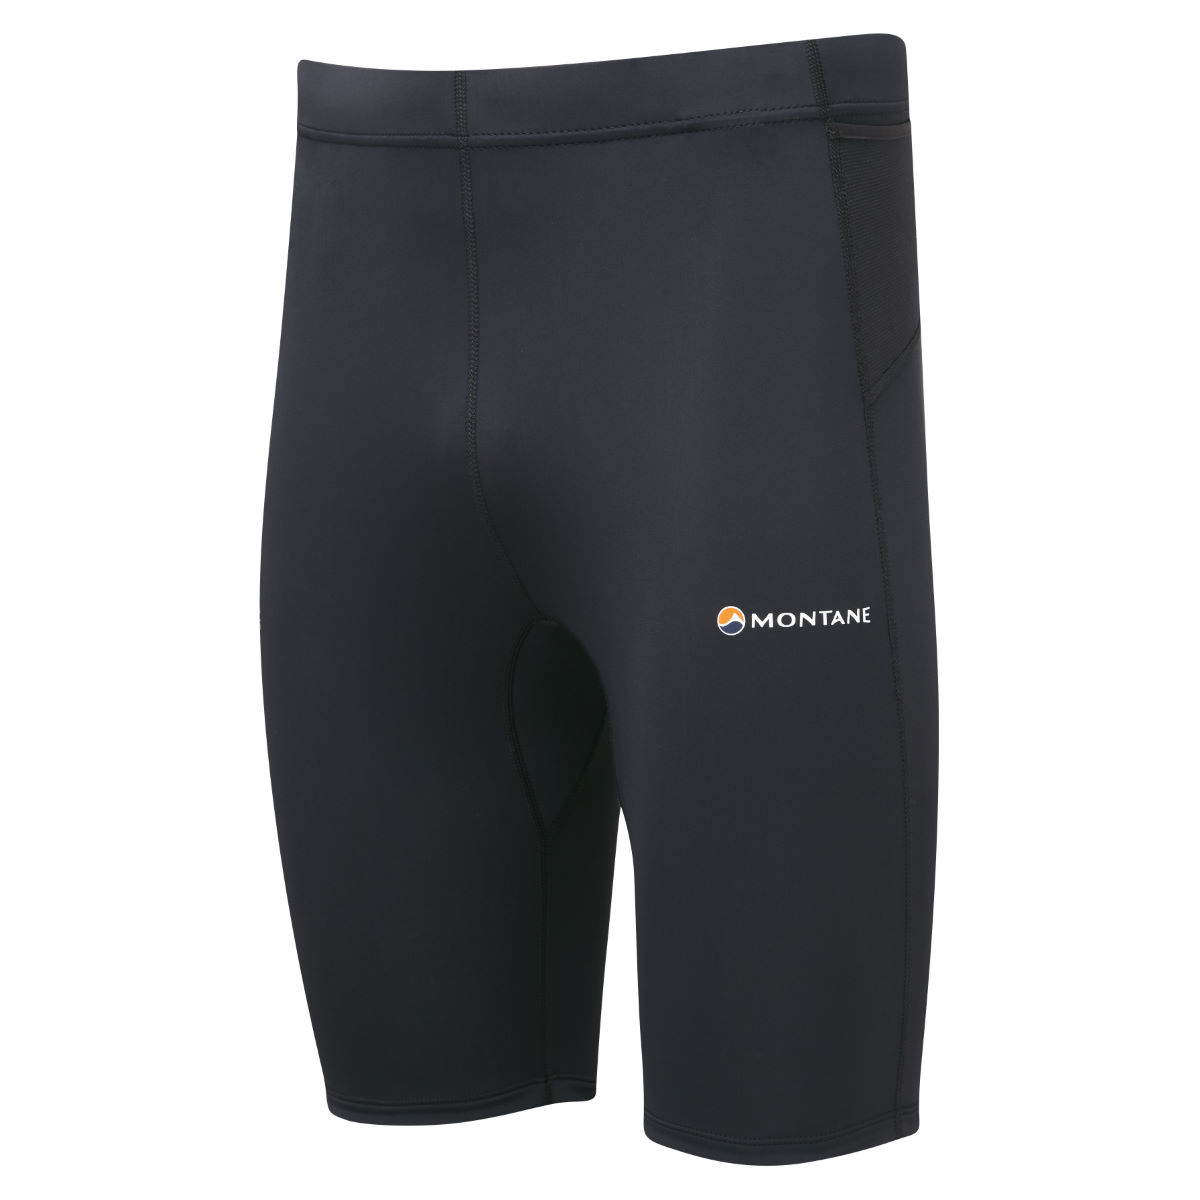 Montane Montane Trail Series Short Tights   Shorts